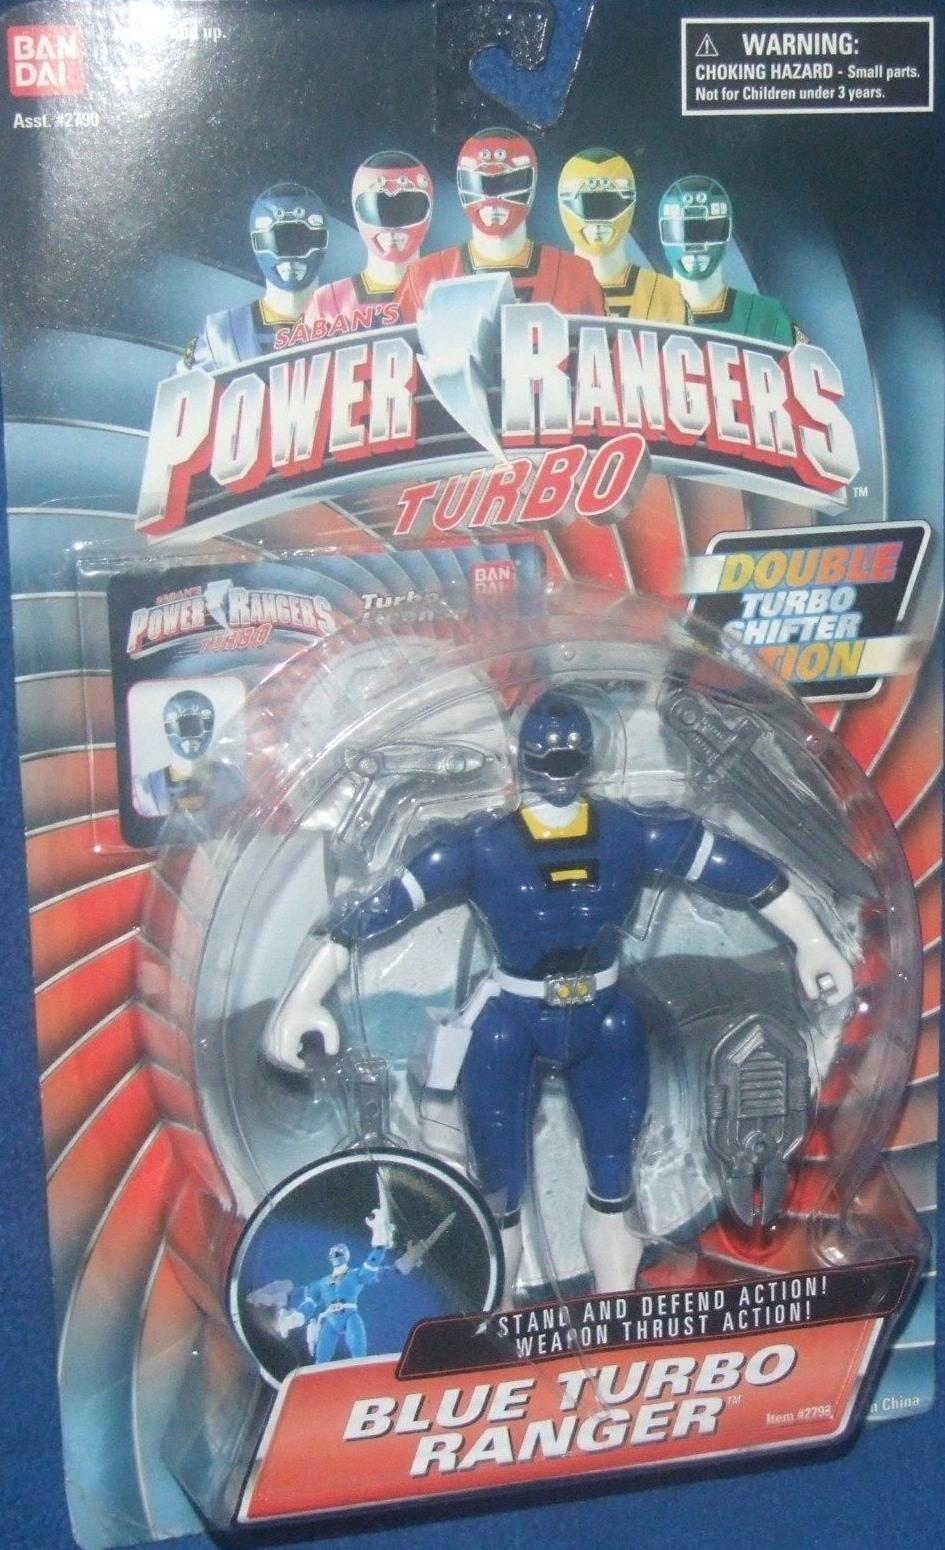 Power rangers turbo blau 5  ranger neue doppel - turbo - wandler - aktion w waffen